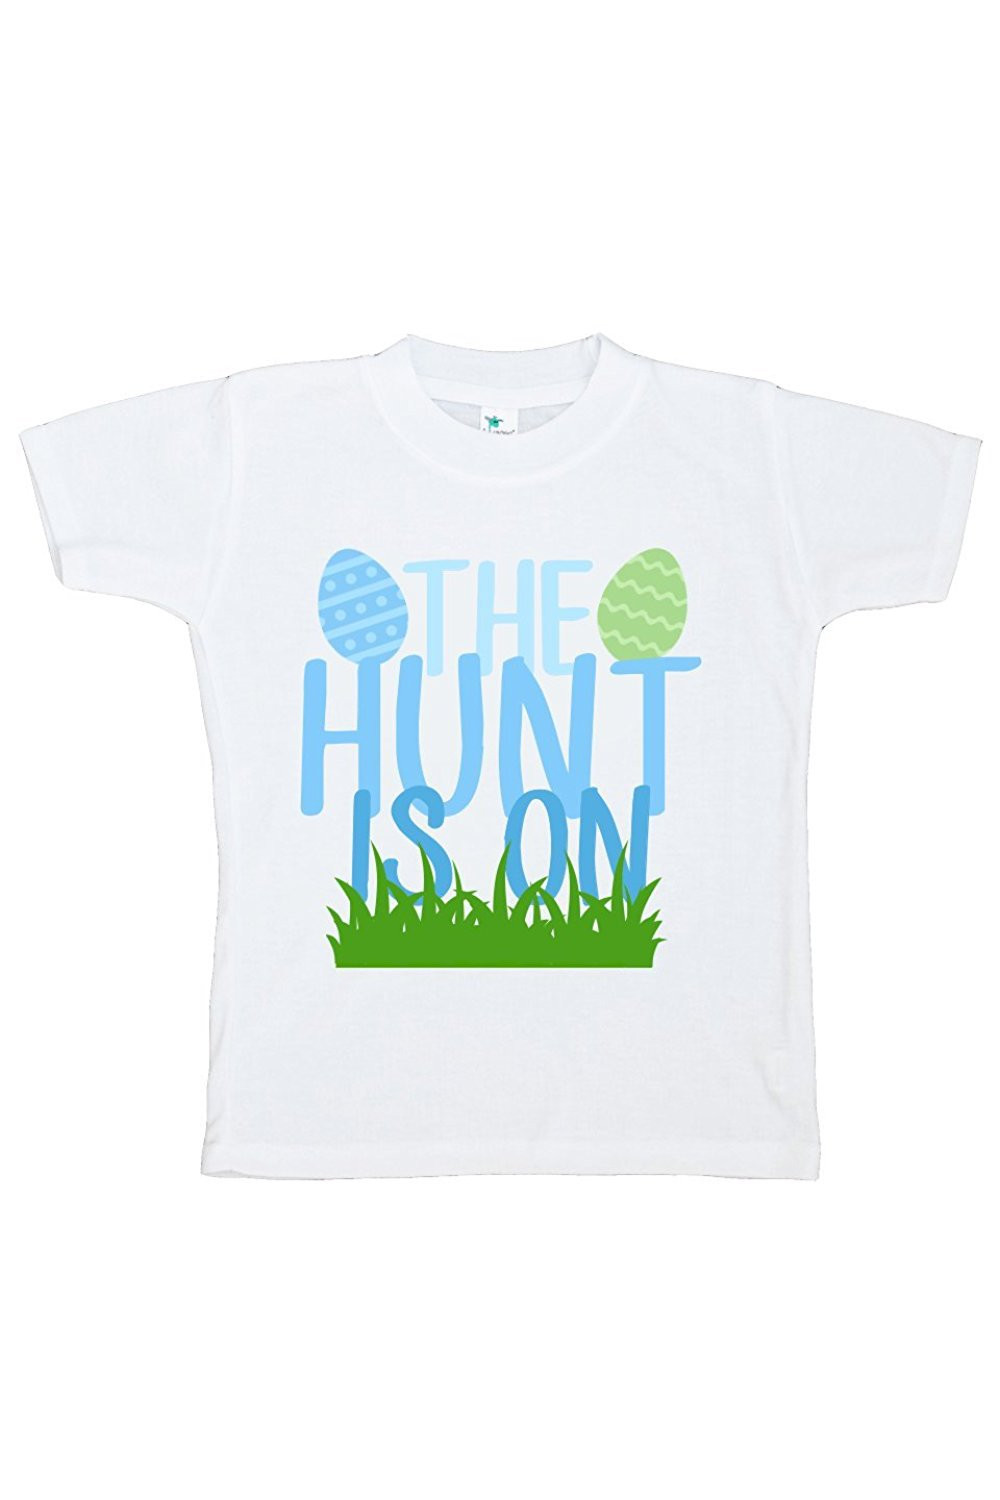 Custom Party Shop The Hunt Is On Boy's Novelty Easter Tshirt - Green And Blue / 3T Shirt